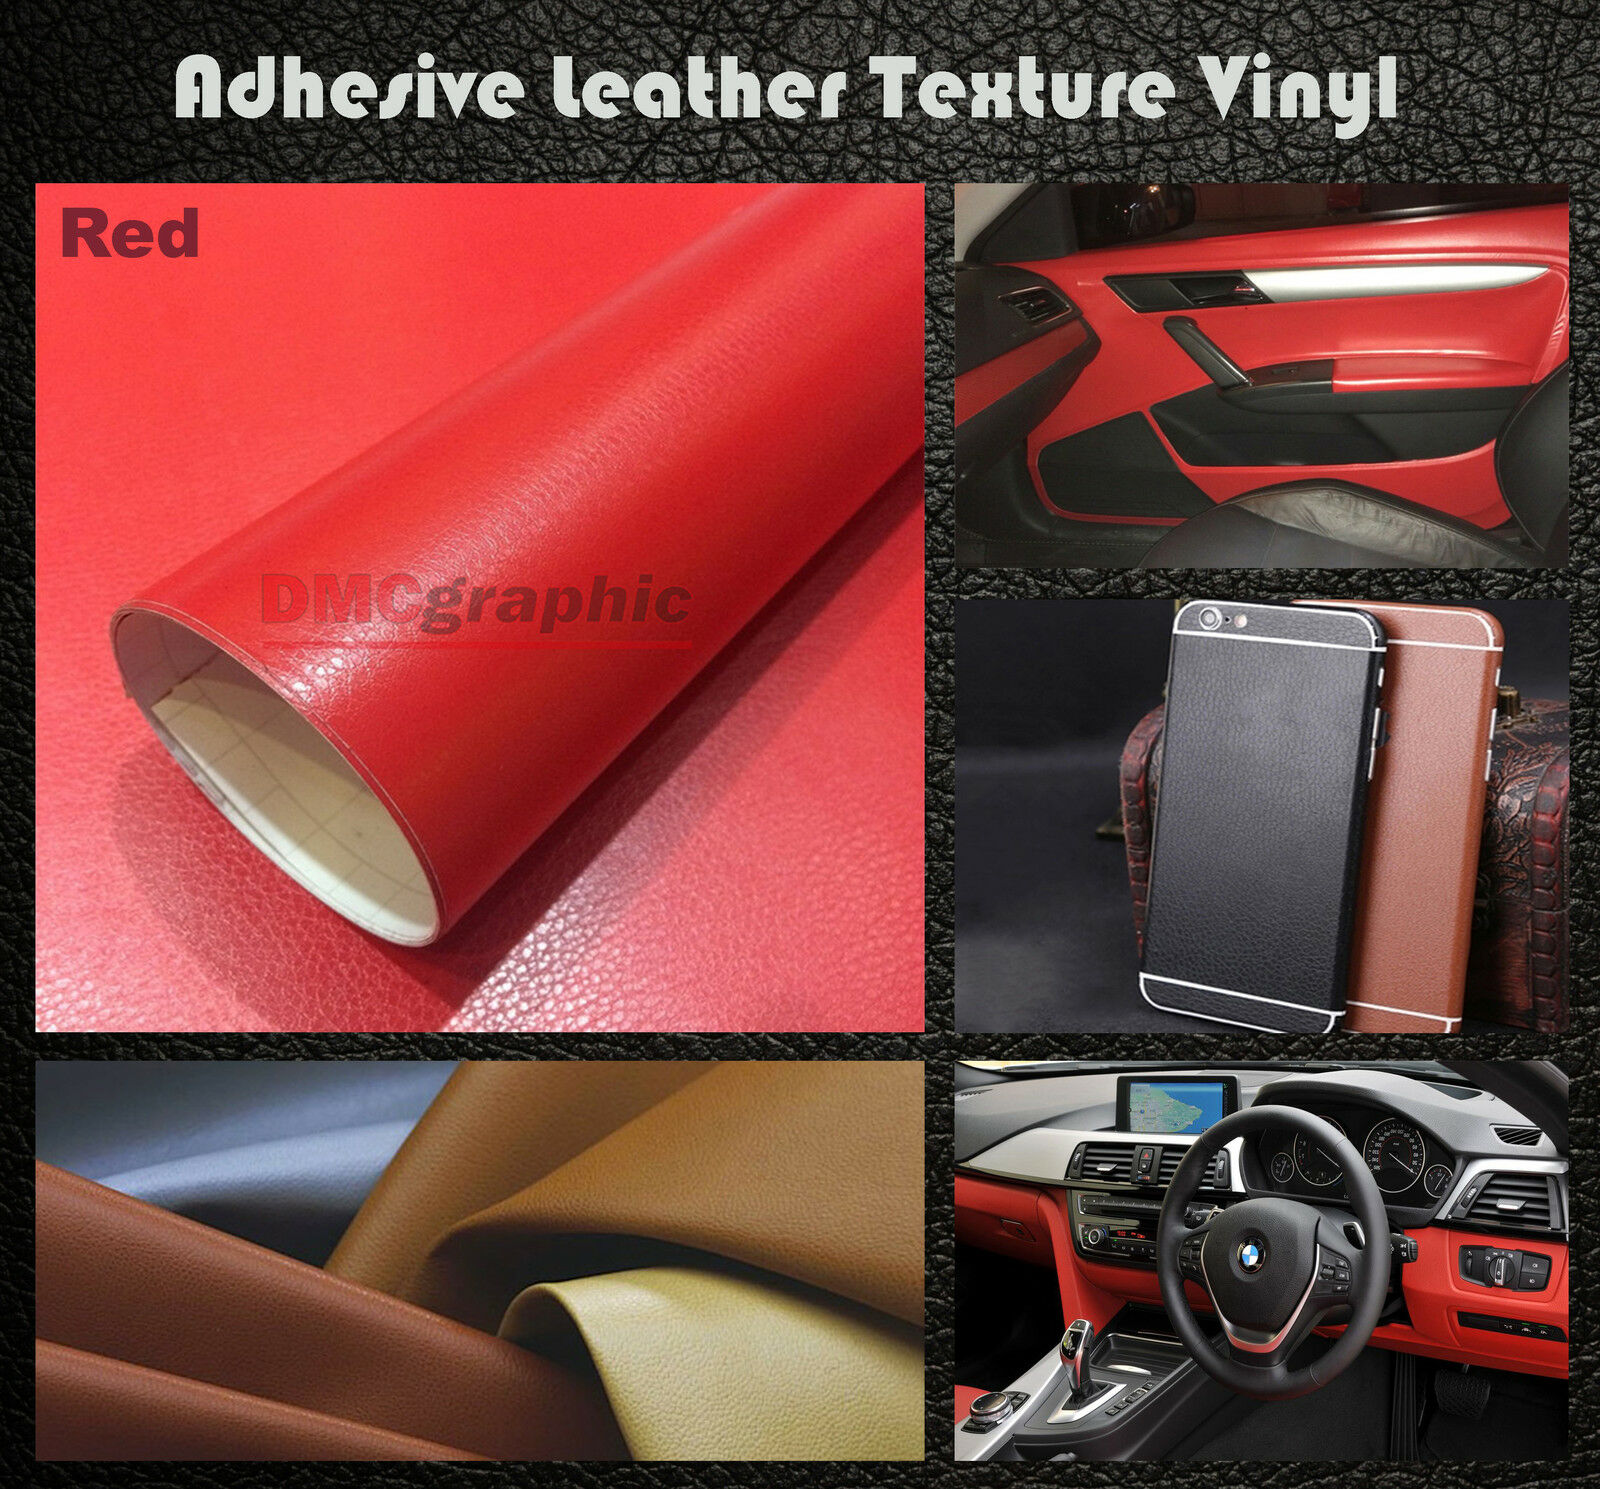 50x152cm red leather texture adhesive vinyl wrap film sticker for cars furniture. Black Bedroom Furniture Sets. Home Design Ideas